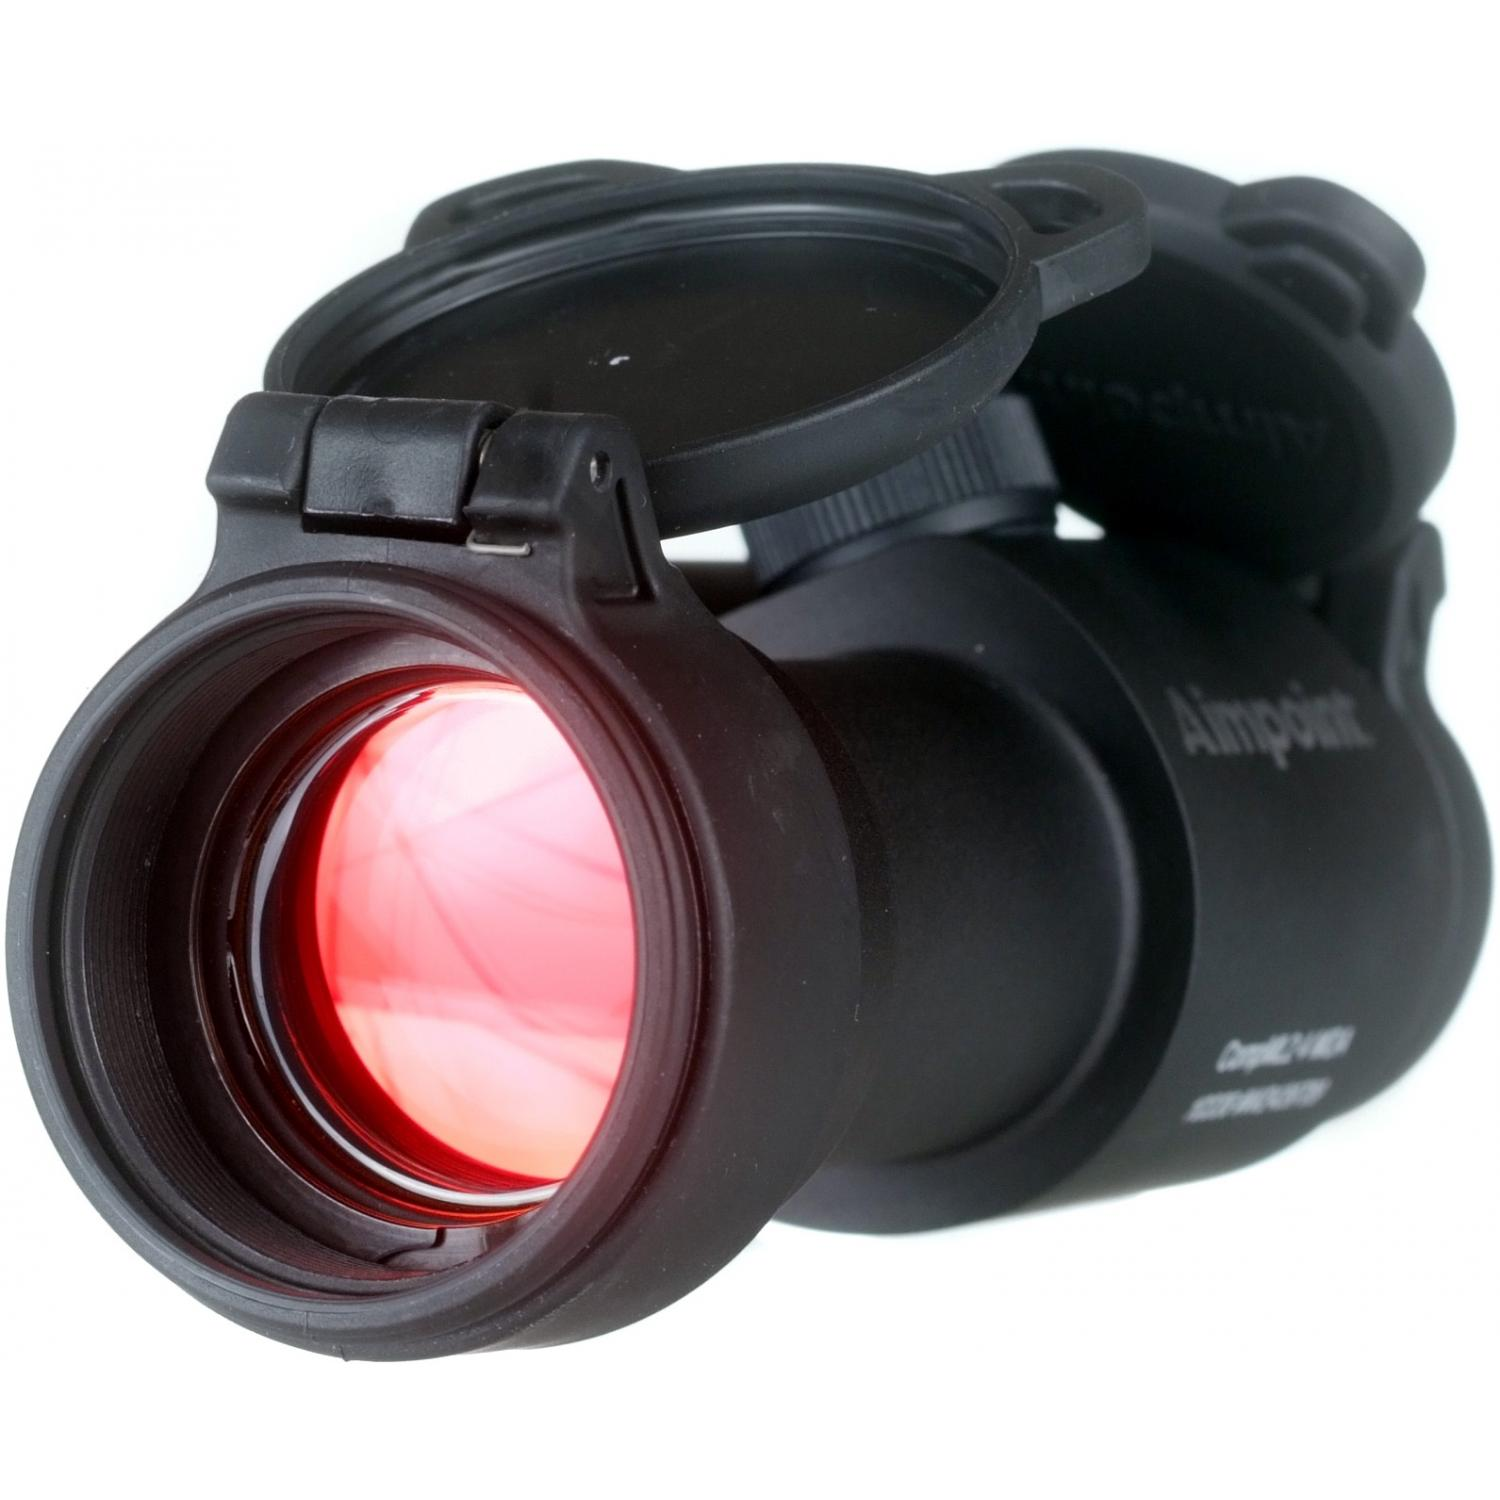 Picture of Aimpoint CompM2 Red Dot 4 MOA Sight - Black - 10336